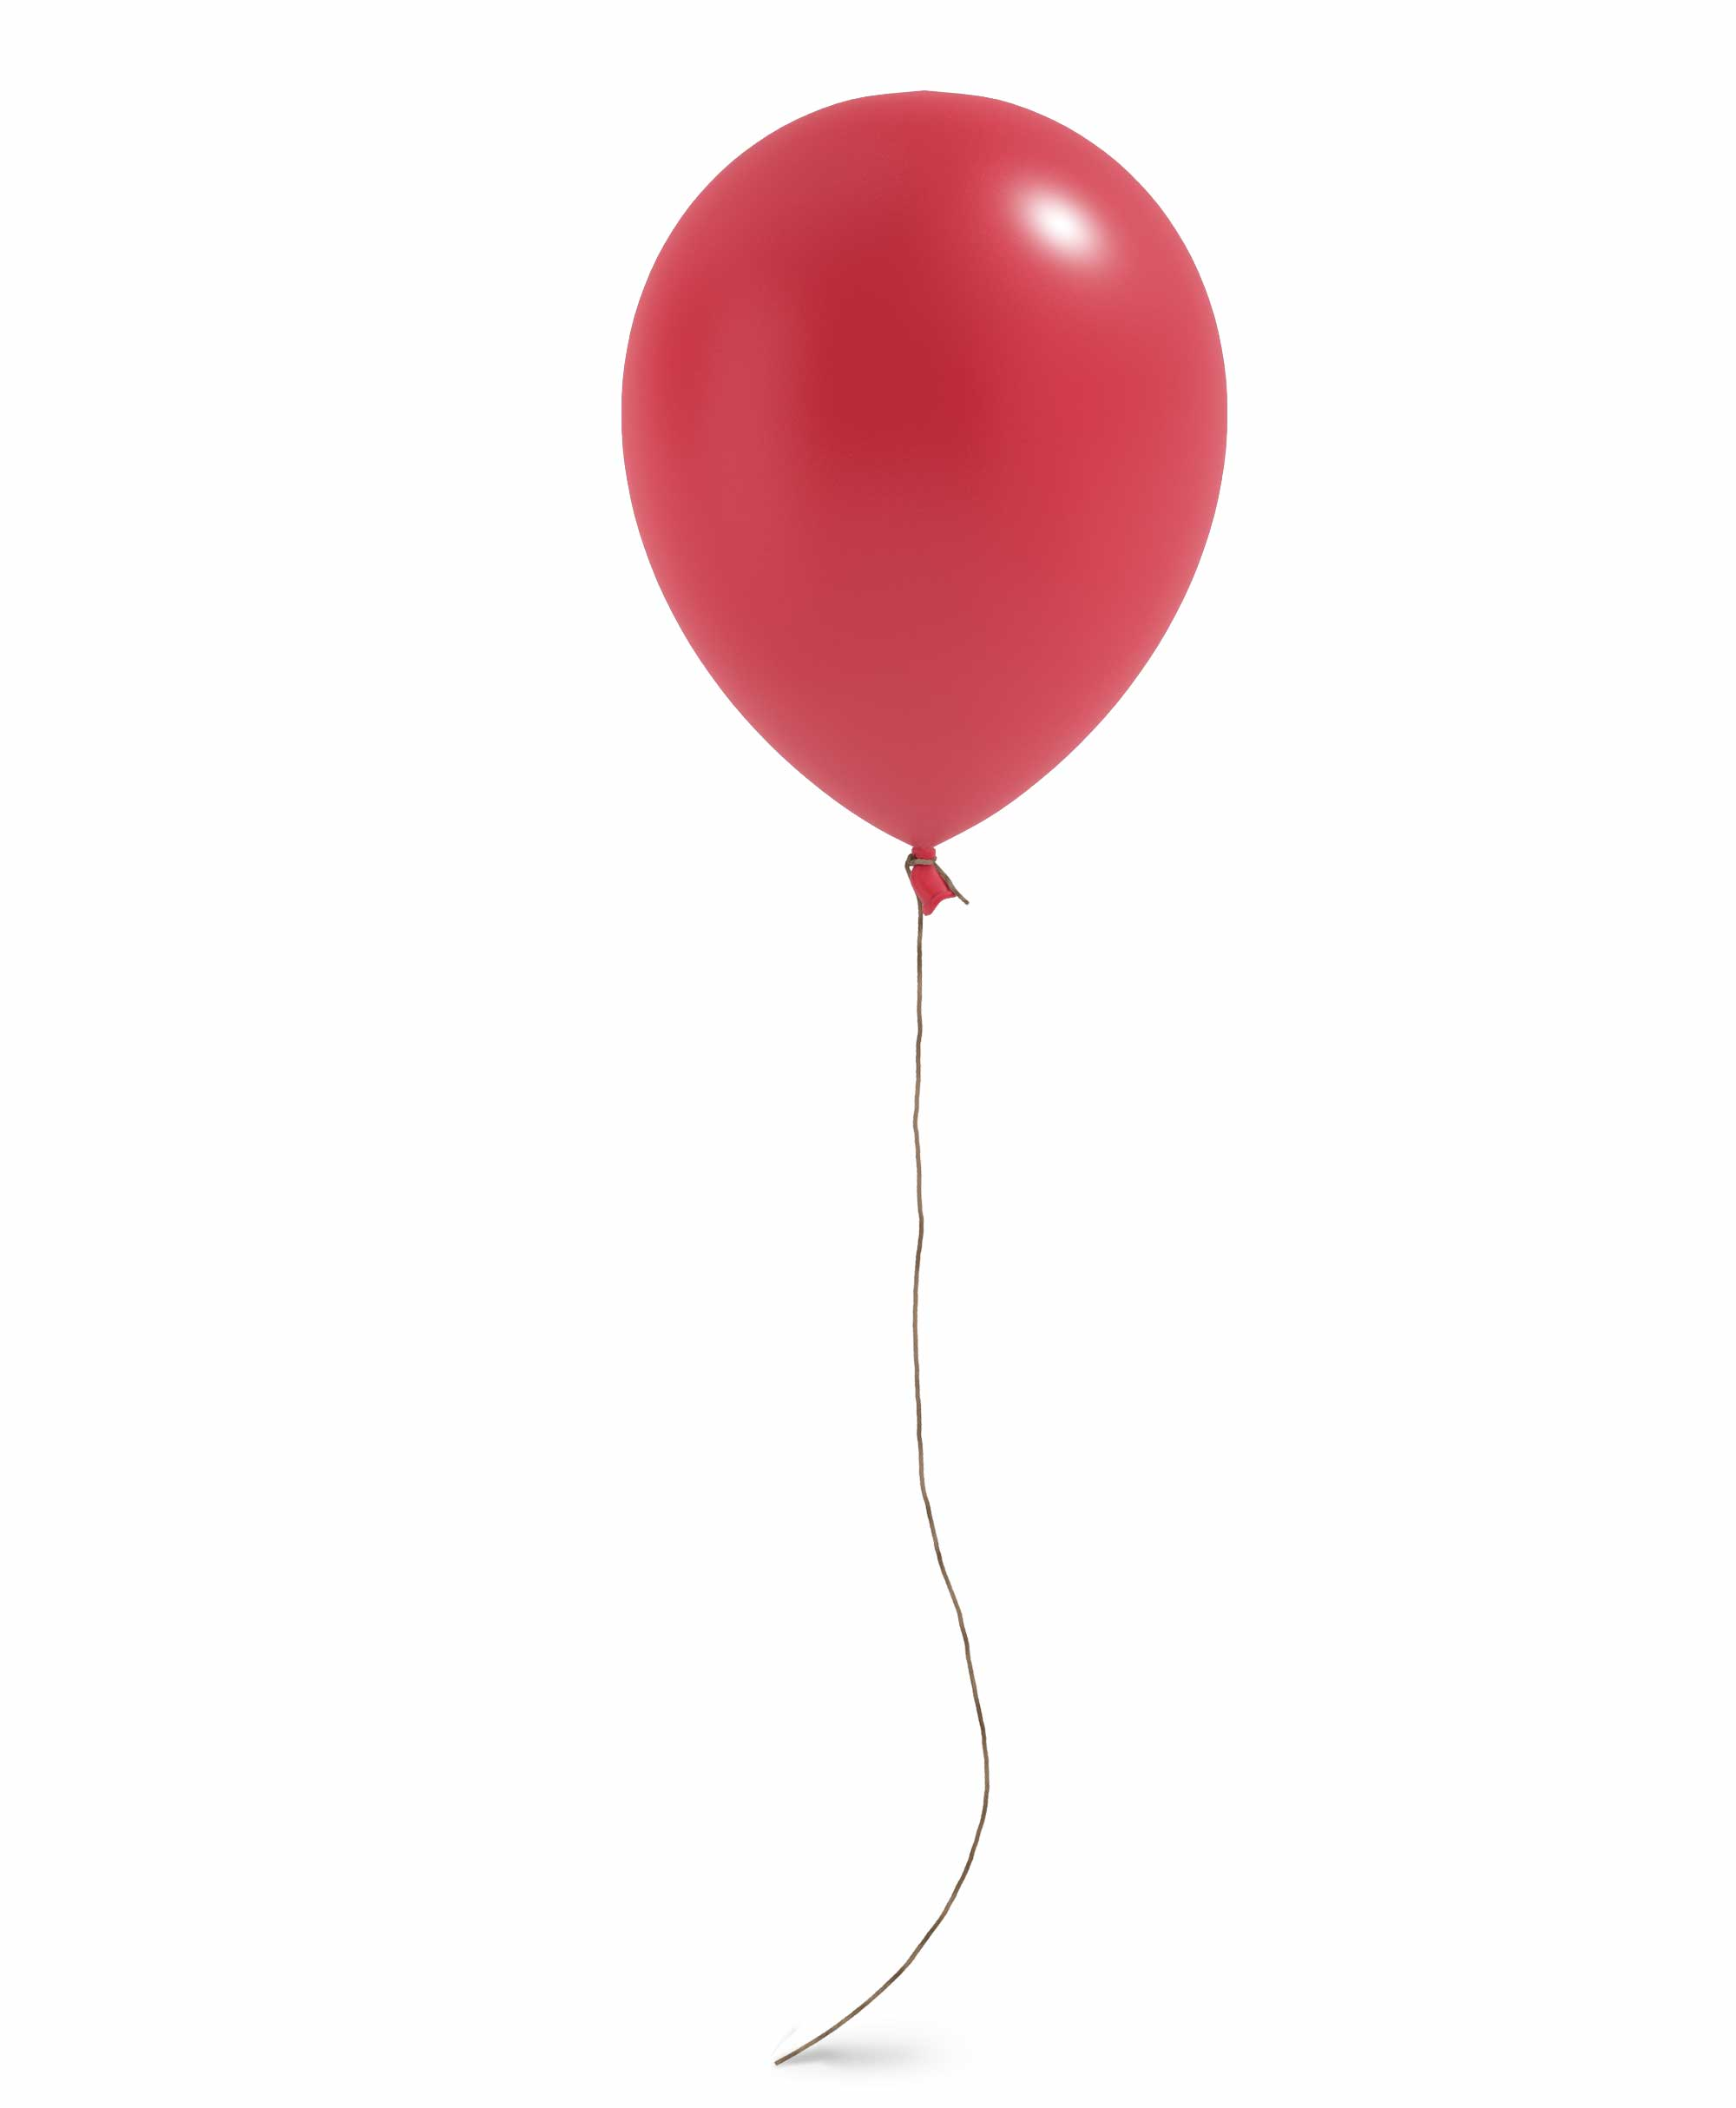 "Red balloon 11"" - Raspberry theme"